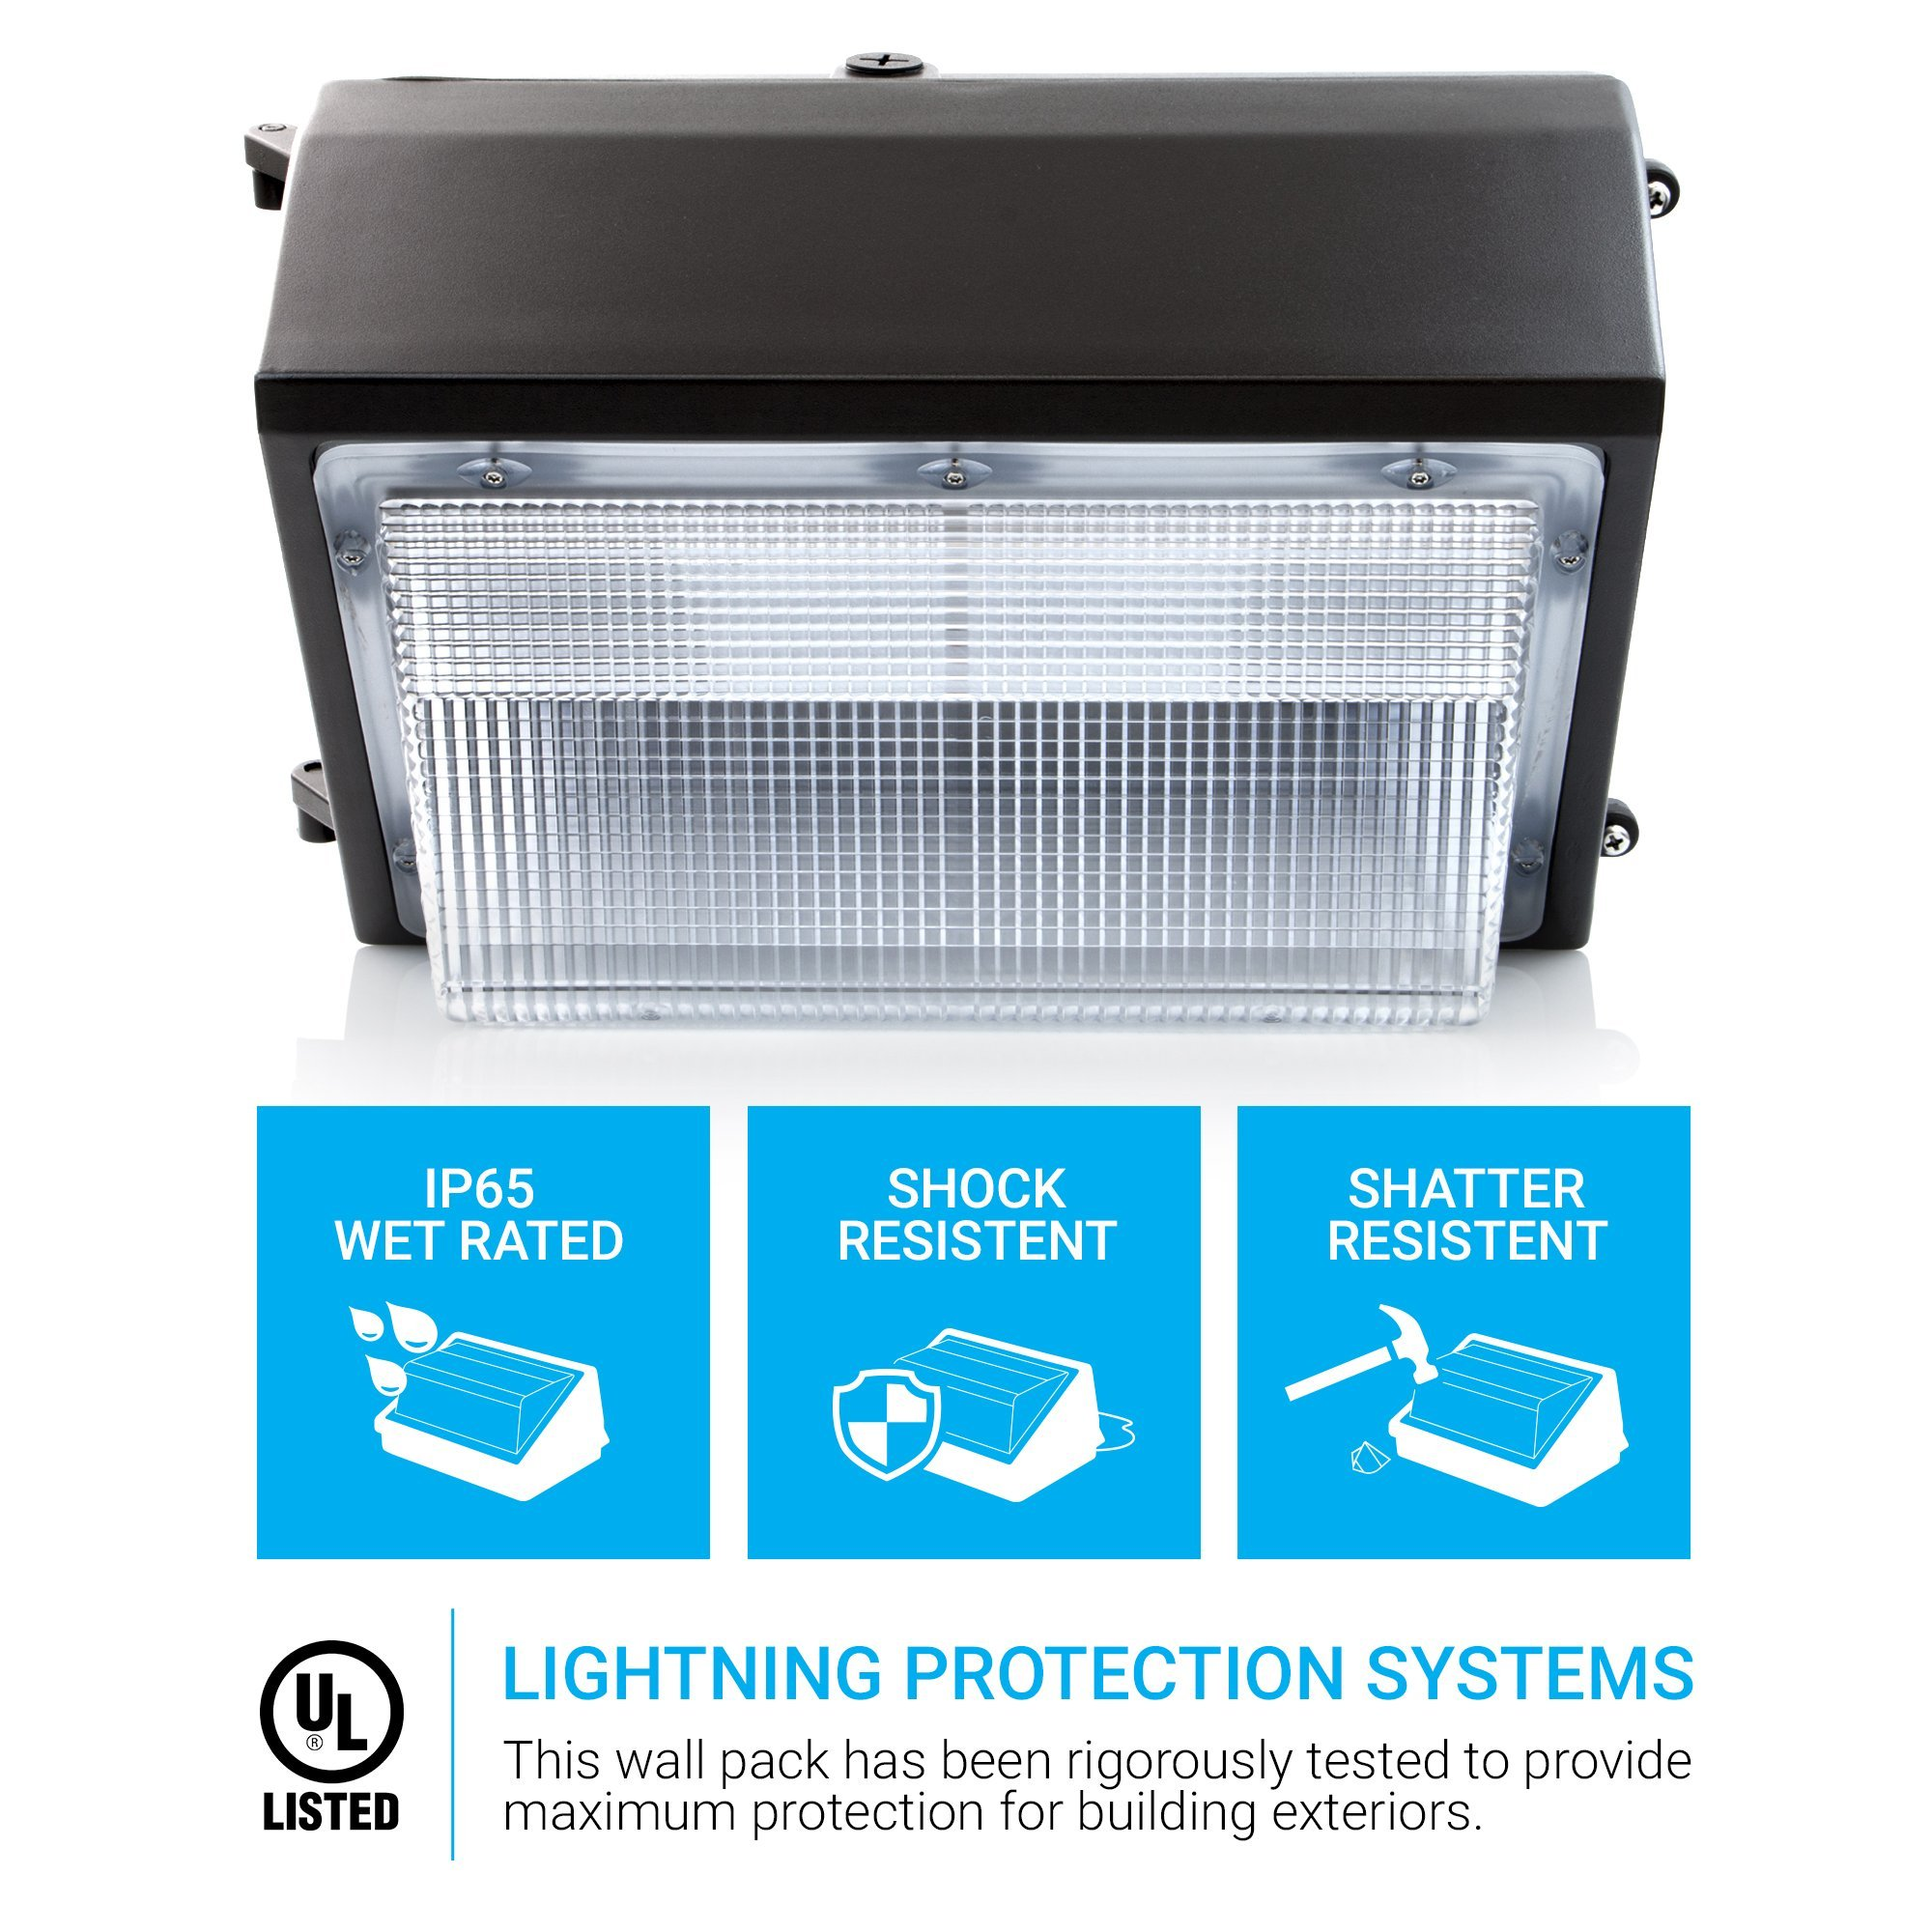 HyperSelect LED 120W Wall Pack Light, Hyperikon, HPS/HID Replacement, 5000K (Crystal White Glow), 9600 lumen, UL Listed by Hyperikon (Image #2)